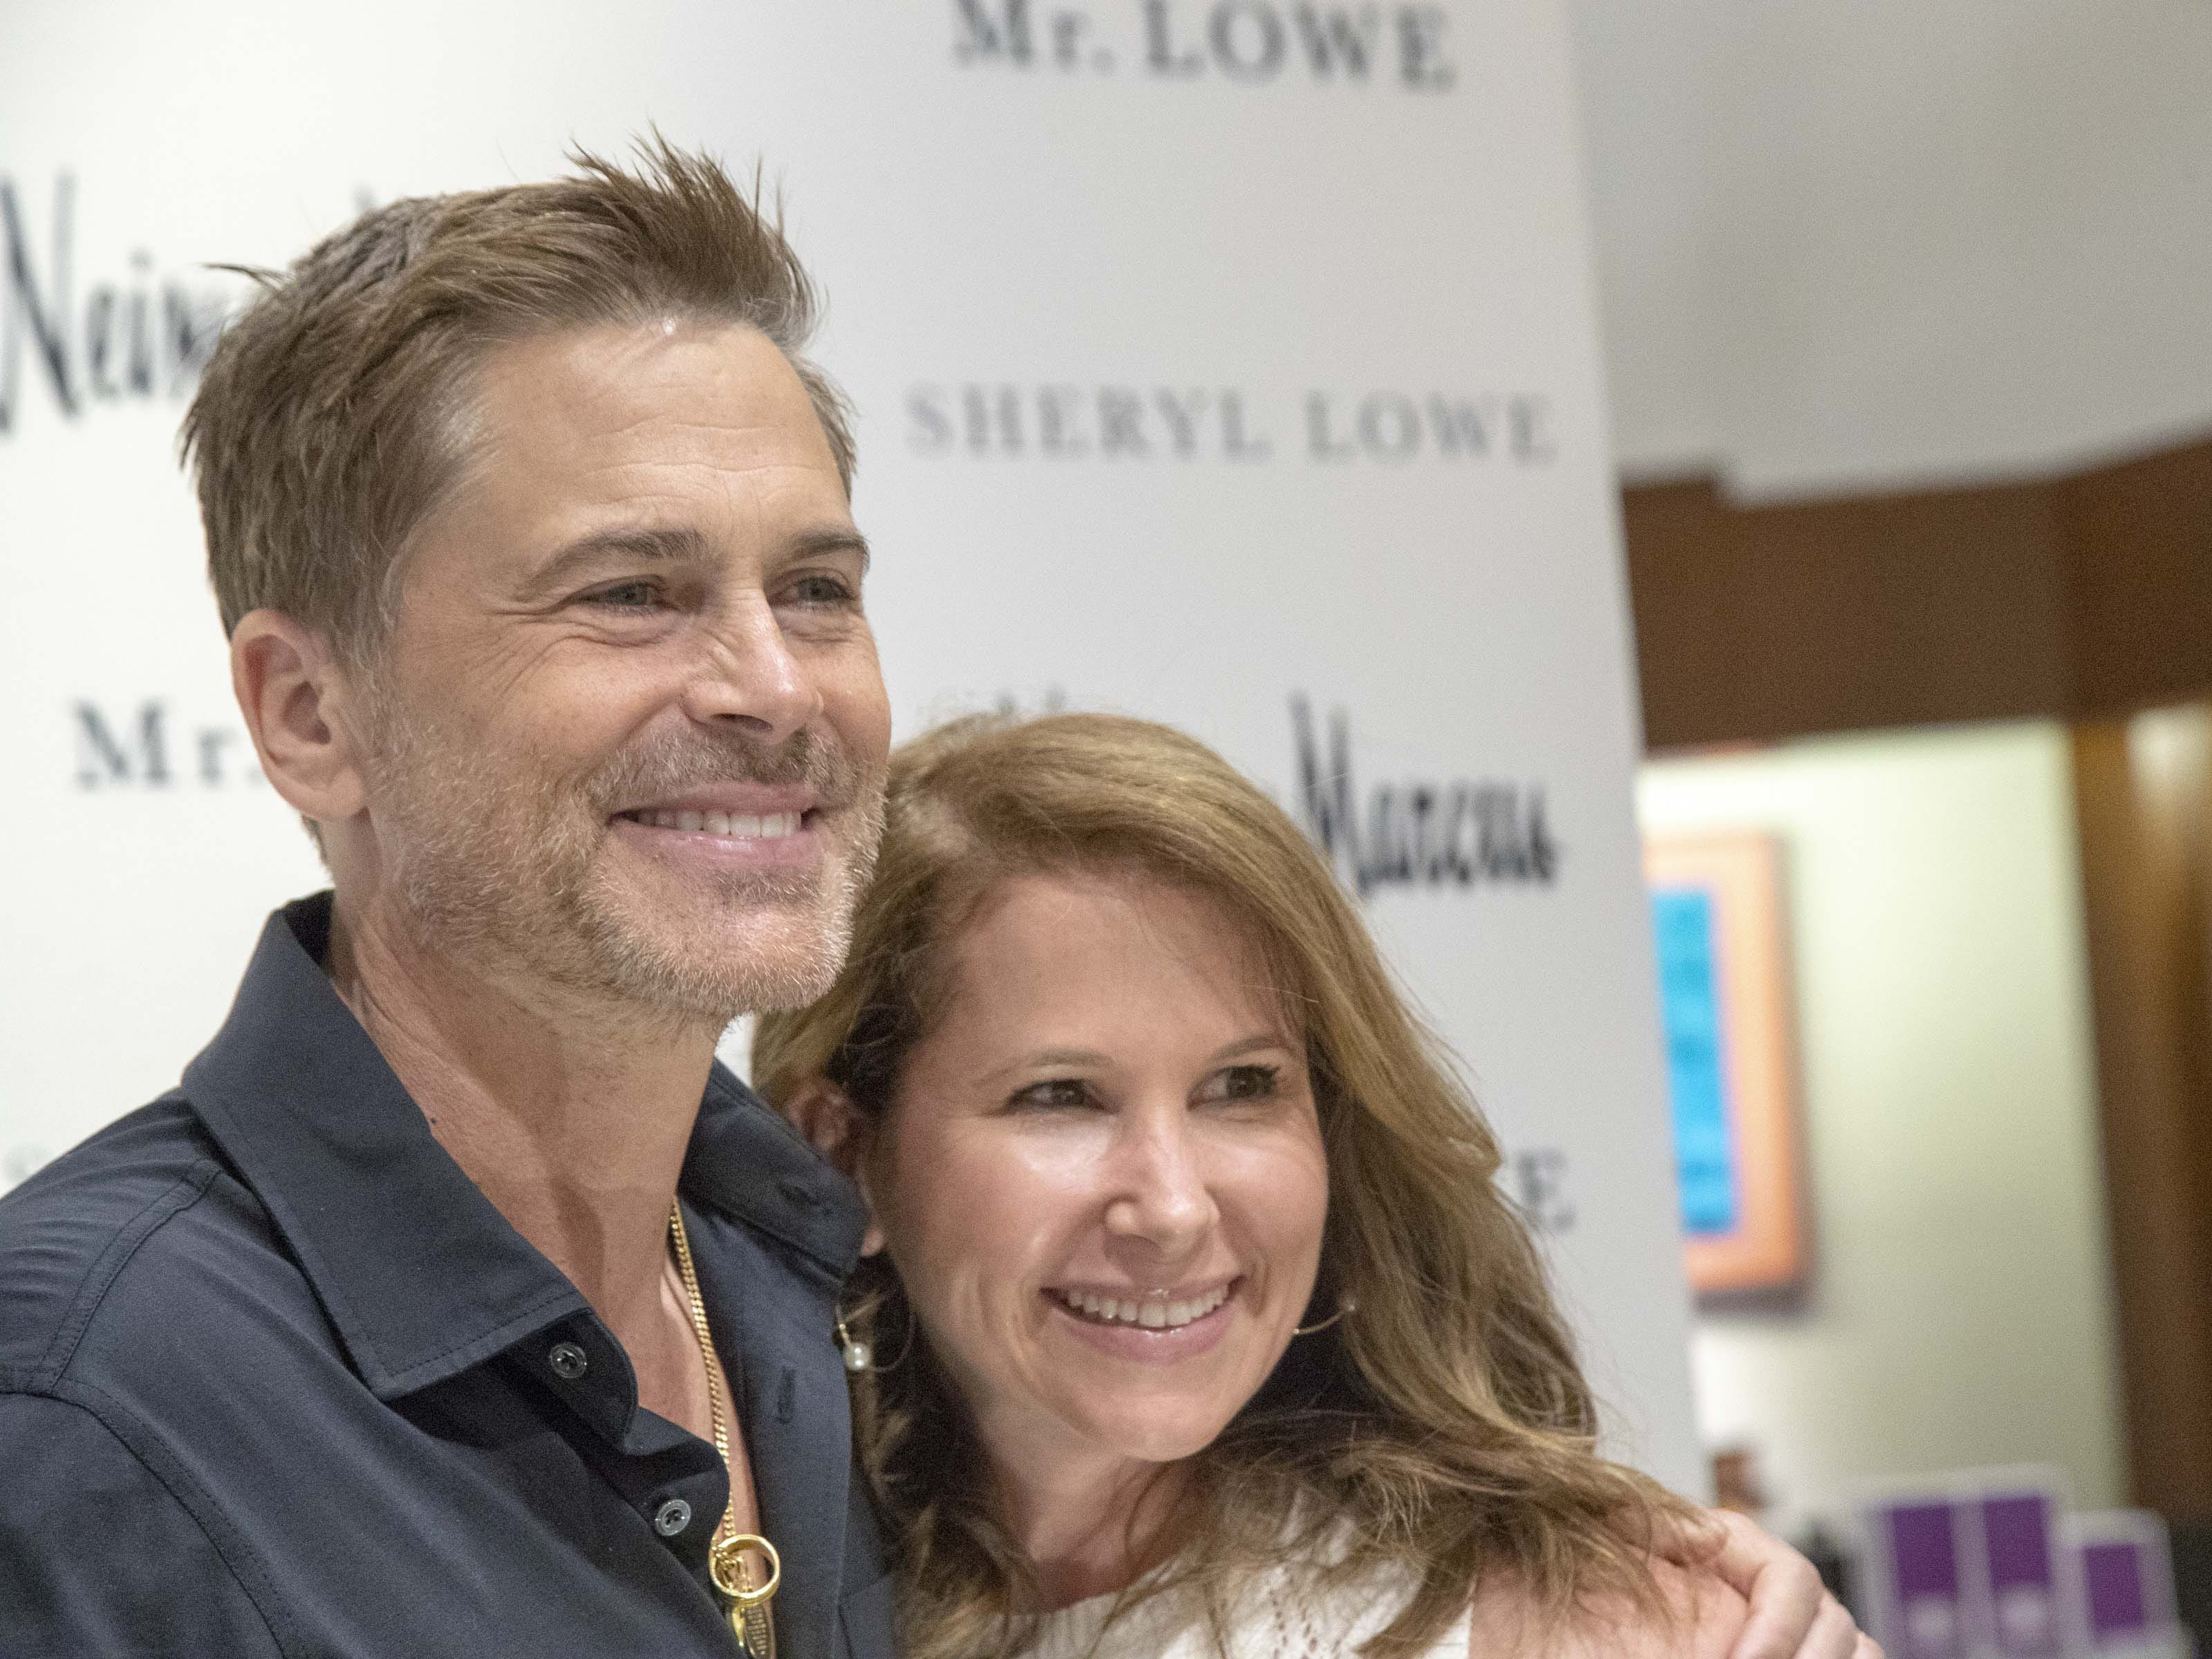 Fans take photos with actor Rob Lowe during an event introducing his new men's jewelry collection at Scottsdale Fashion Square on March 28, 2019.